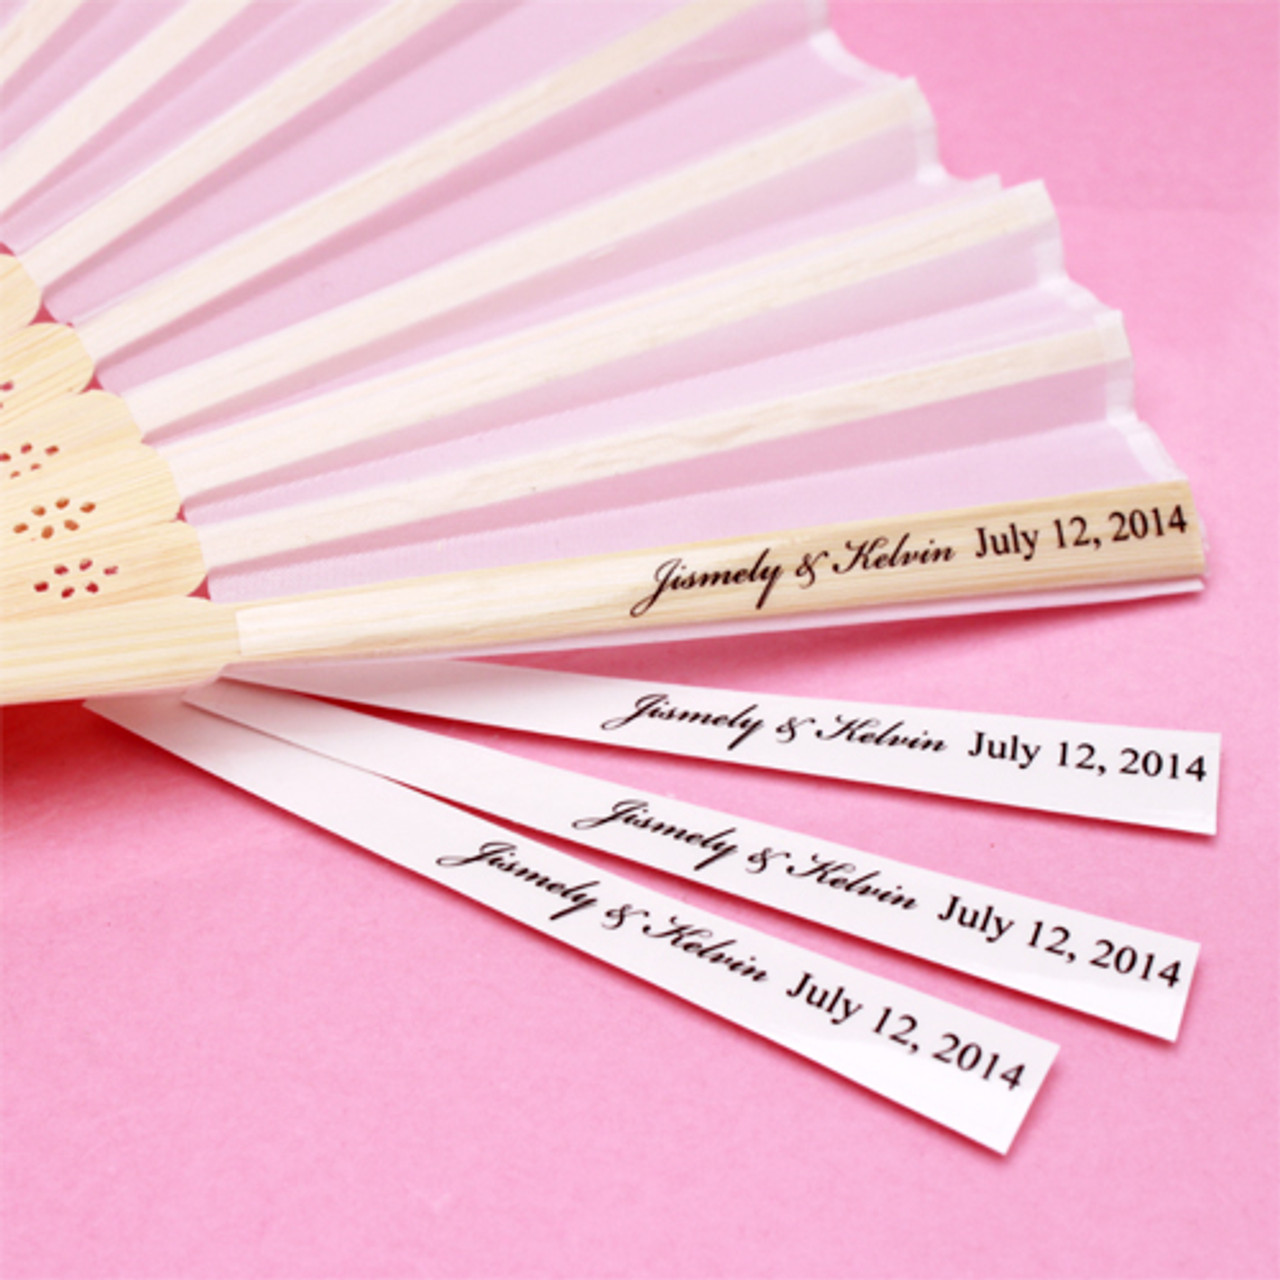 Personalized Clear Hand Fan Labels 24 Pieces